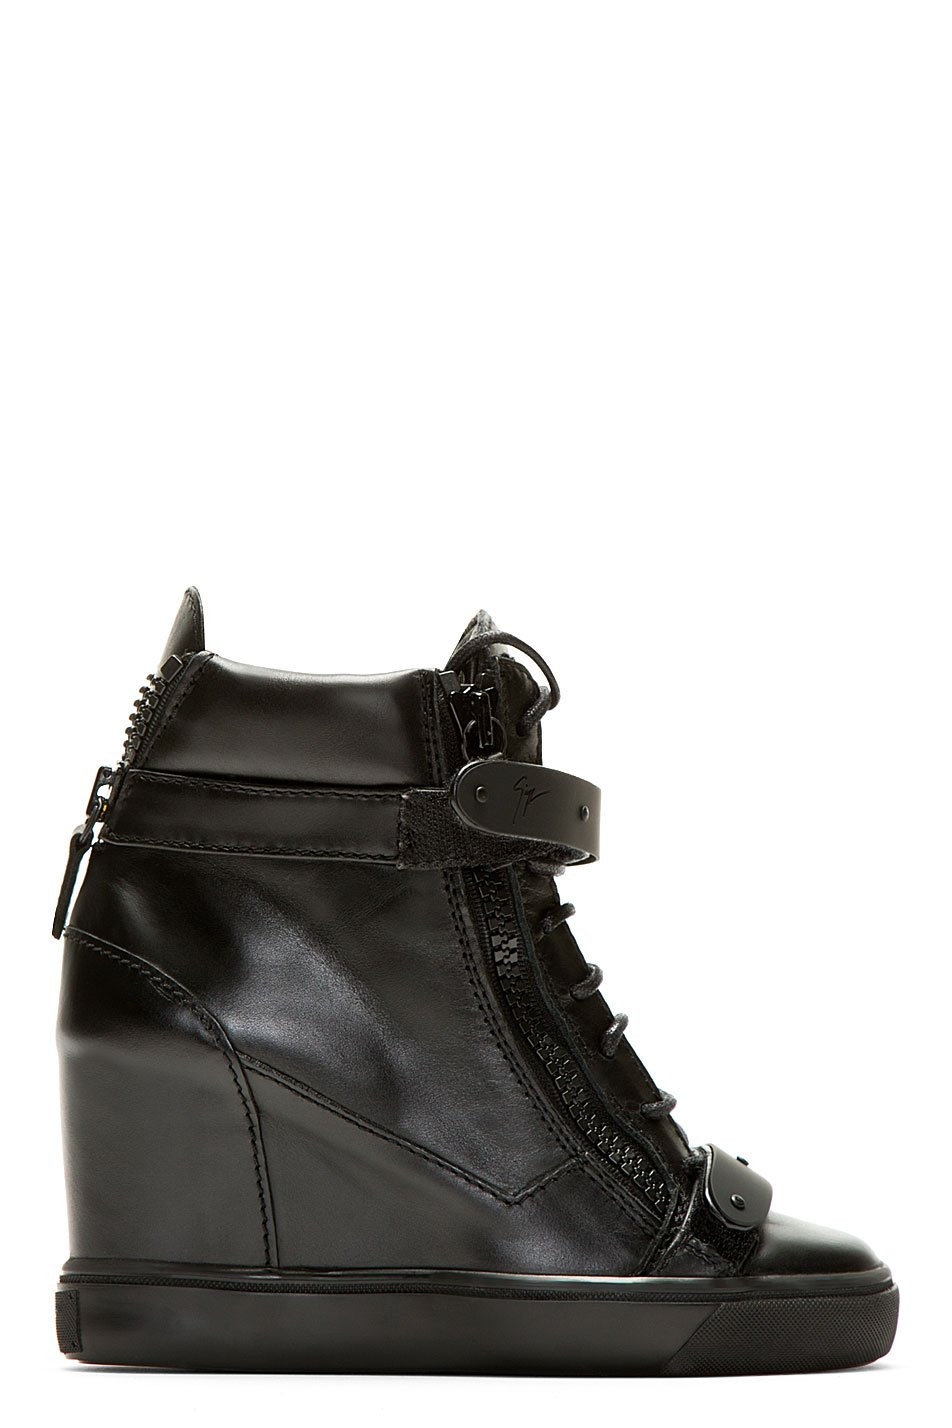 Giuseppe zanotti black leather wedge lorenz high_top sneakers